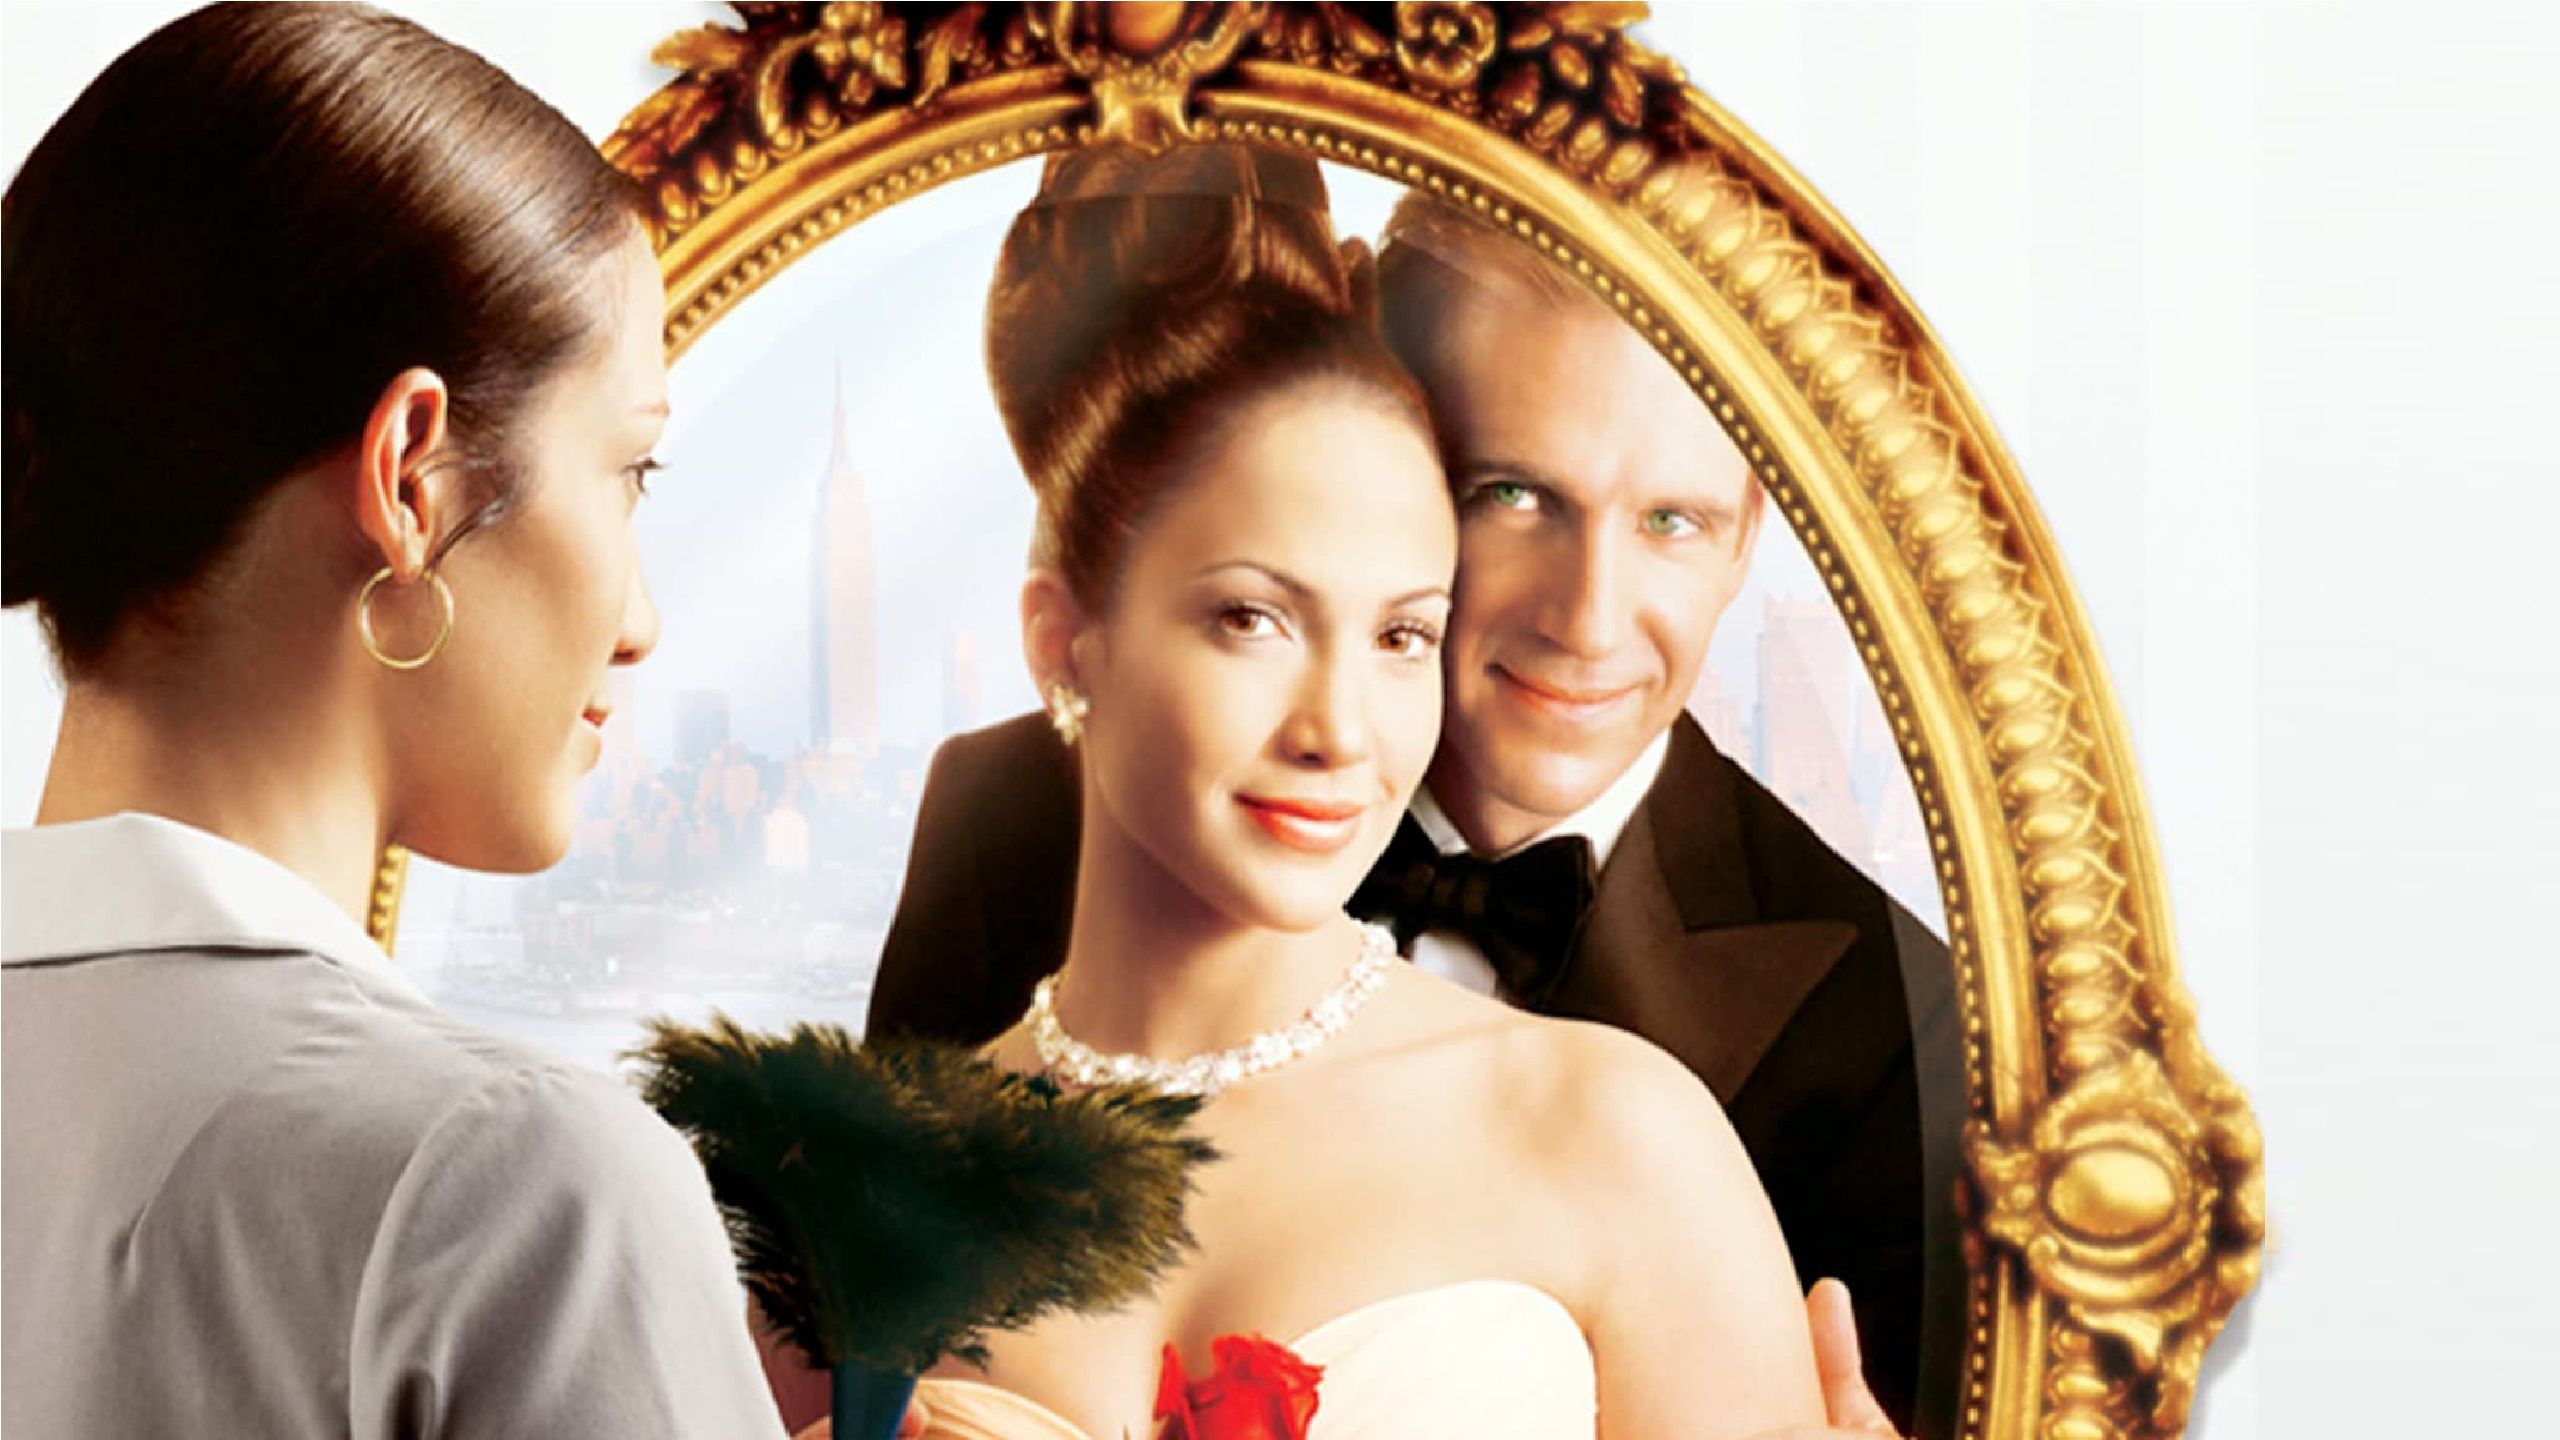 Maid in Manhattan - Un Amore a 5 Stelle - Jennifer Lopez